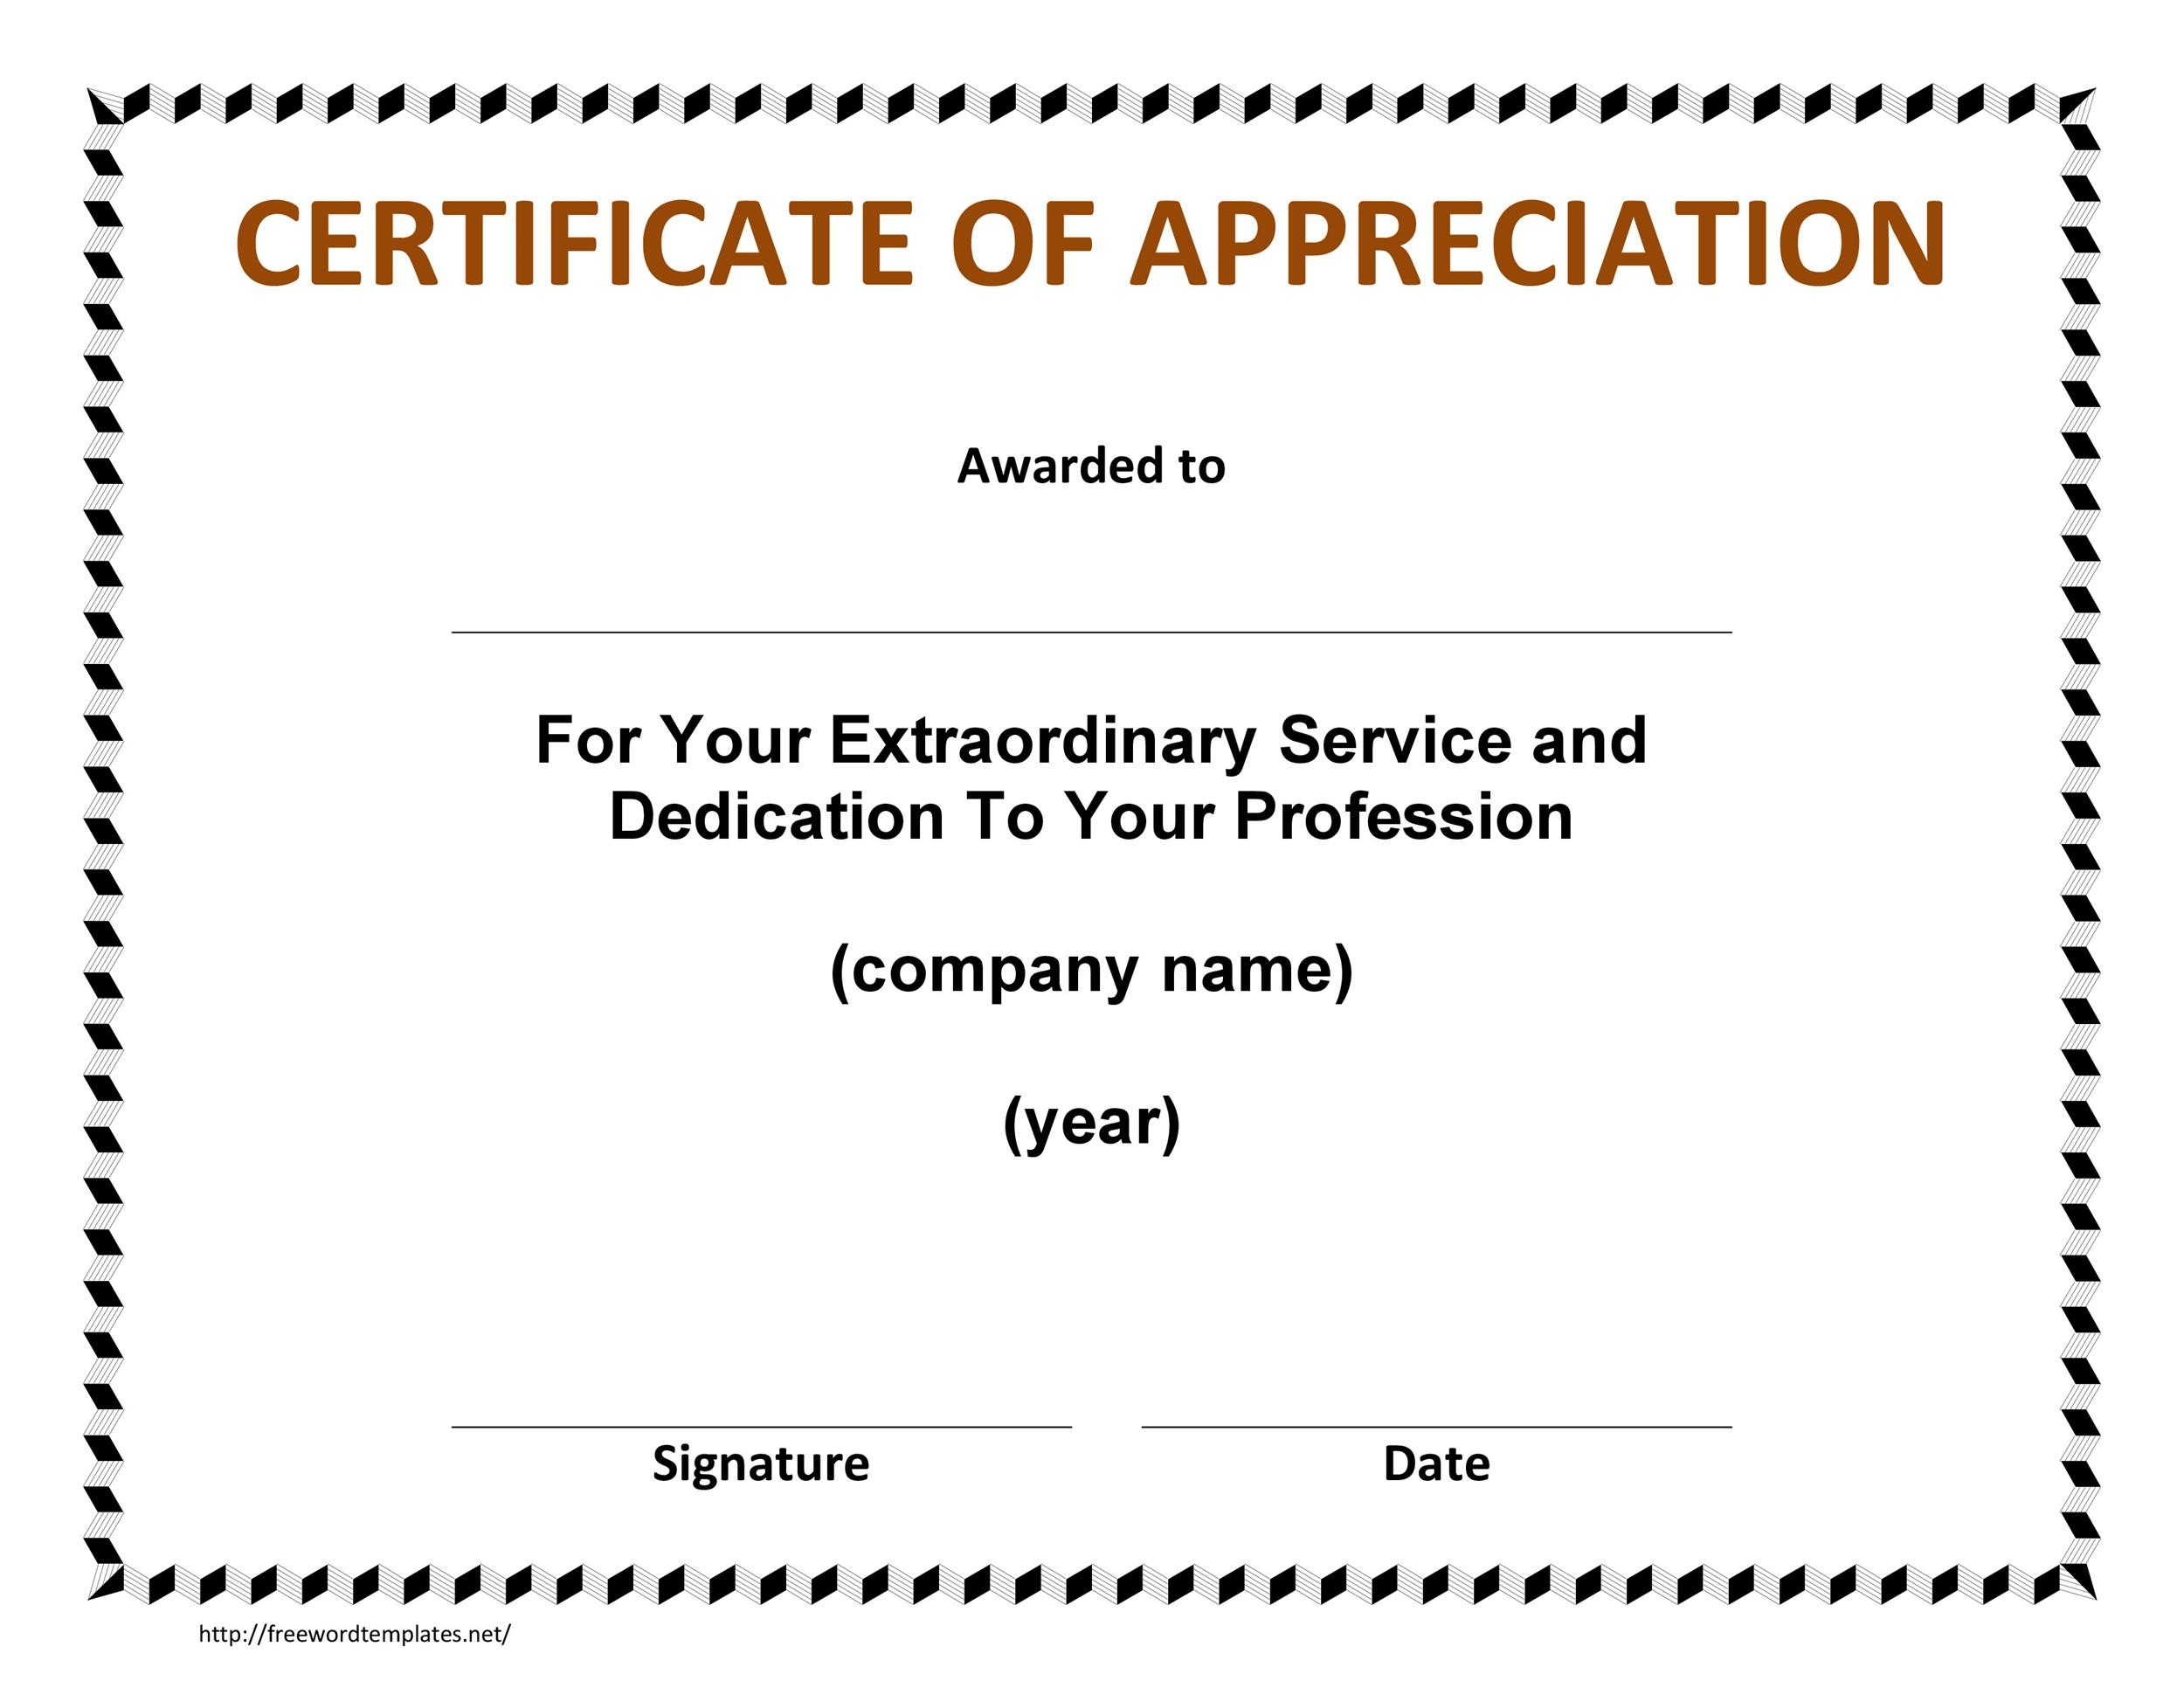 Free Certificate of Appreciation 04